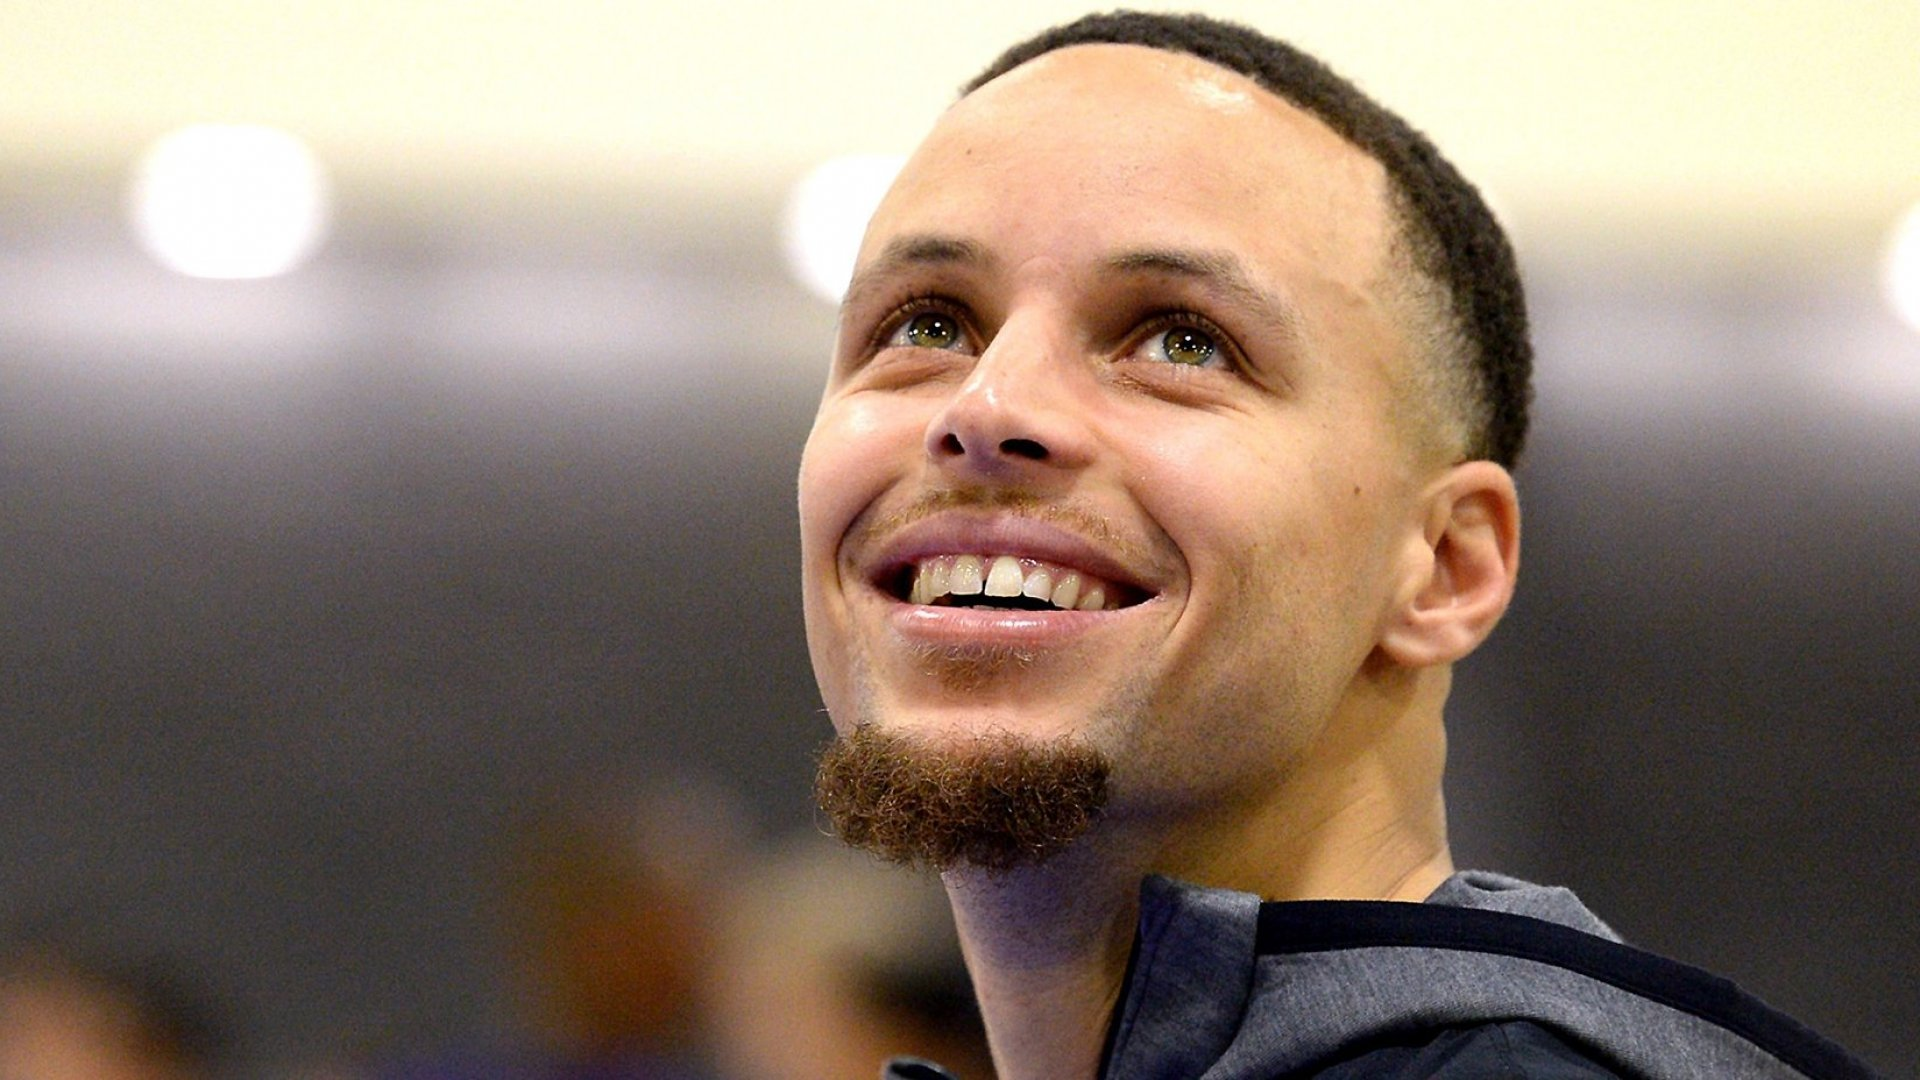 Stephen Curry Promised a 9-Year-Old His Under Armour Shoes Would Come in Girls' Sizes. What He Did Next Was Truly Brilliant